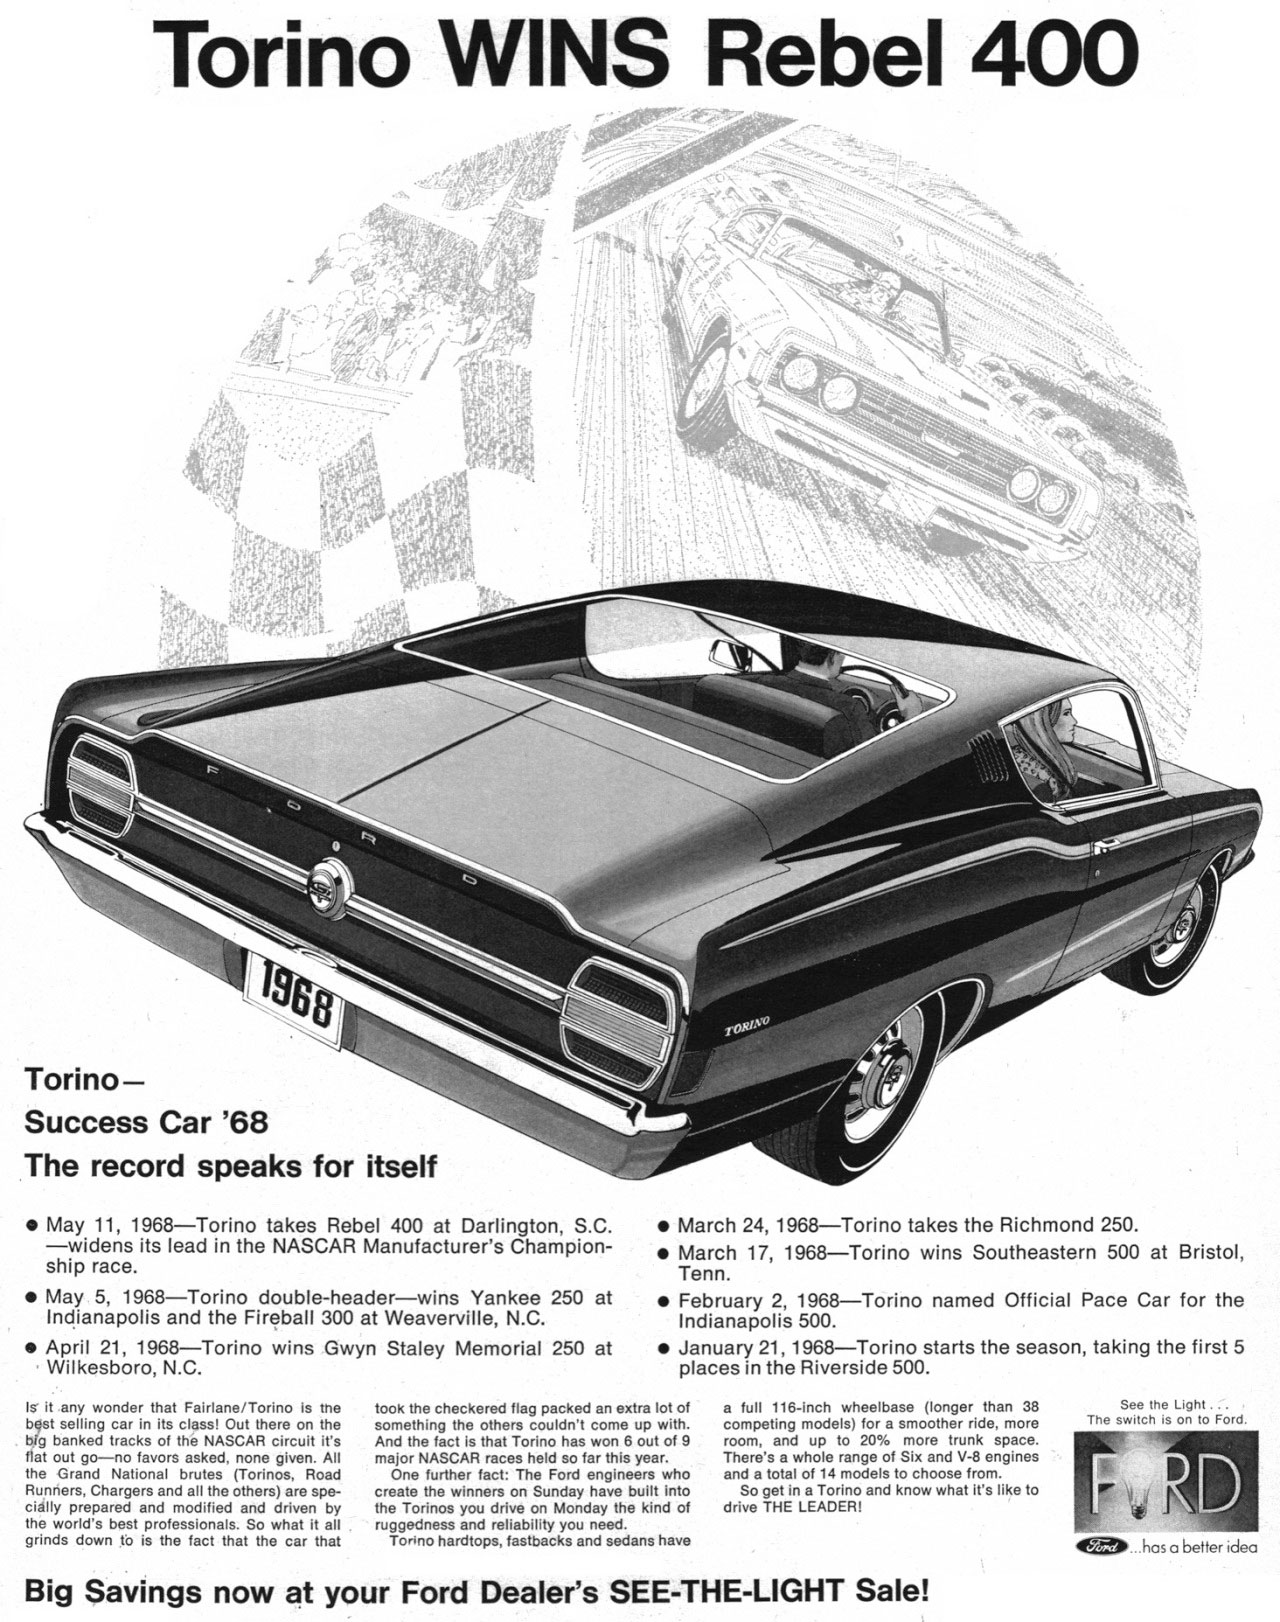 Torino WINS Rebel 400   Torino—Success Car '68 The record speaks for itself  • May 11, 1968-Torino takes Rebel 400 at Darlington, S.C. -widens its lead in the NASCAR Manufacturer's Champion-ship race. • May 5, 1968-Torino double-header-wins Yankee 250 at Indianapolis and the Fireball 300 at Weaverville, N.C. • April 21, 1968-Torino wins Gwyn Staley Memorial 250 at Wilkesboro, N.C.  Is it any wonder that Fairlane/Torino is me best selling car in its class! Out there on the big banked tracks of the NASCAR circuit it's flat out go-no favors asked, none given. All the Grand National brutes (Torinos, Road Runners, Chargers and all the others) are spe-cially prepared and modified and driven by the world's best professionals. So what it all grinds down to is the fact that the car that  • March 24, 1968-Torino takes the Richmond 250. • March 17, 1968-Torino wins Southeastern 500 at Bristol, Tenn. • February 2, 1968-Torino named Official Pace Car for the Indianapolis 500. • January 21, 1968-Torino starts the season, taking the first 5 places in the Riverside 500.  took the checkered flag packed an extra lot of something the others couldn't come up with. And the fact is that Torino has won 6 out of 9 major NASCAR races held so far this year. One further fact: The Ford engineers who create the winners on Sunday have built into the Torinos you drive on Monday the kind of ruggedness and reliability you need. Torino hardtops, fastbacks and sedans have  a full 116-inch wheelbase (longer than 38 competing models) for a smoother ride, more room, and up to 20, more trunk space. There's a whole range of Six and V-8 engines and a total of 14 models to choose from. So get in a Torino and know what it's like to drive THE LEADER,  Big Savings now at your Ford Dealer's SEE-THE-LIGHT Sale!  S -ht. The sZeh7sJitoFehl   4050 has a better idea